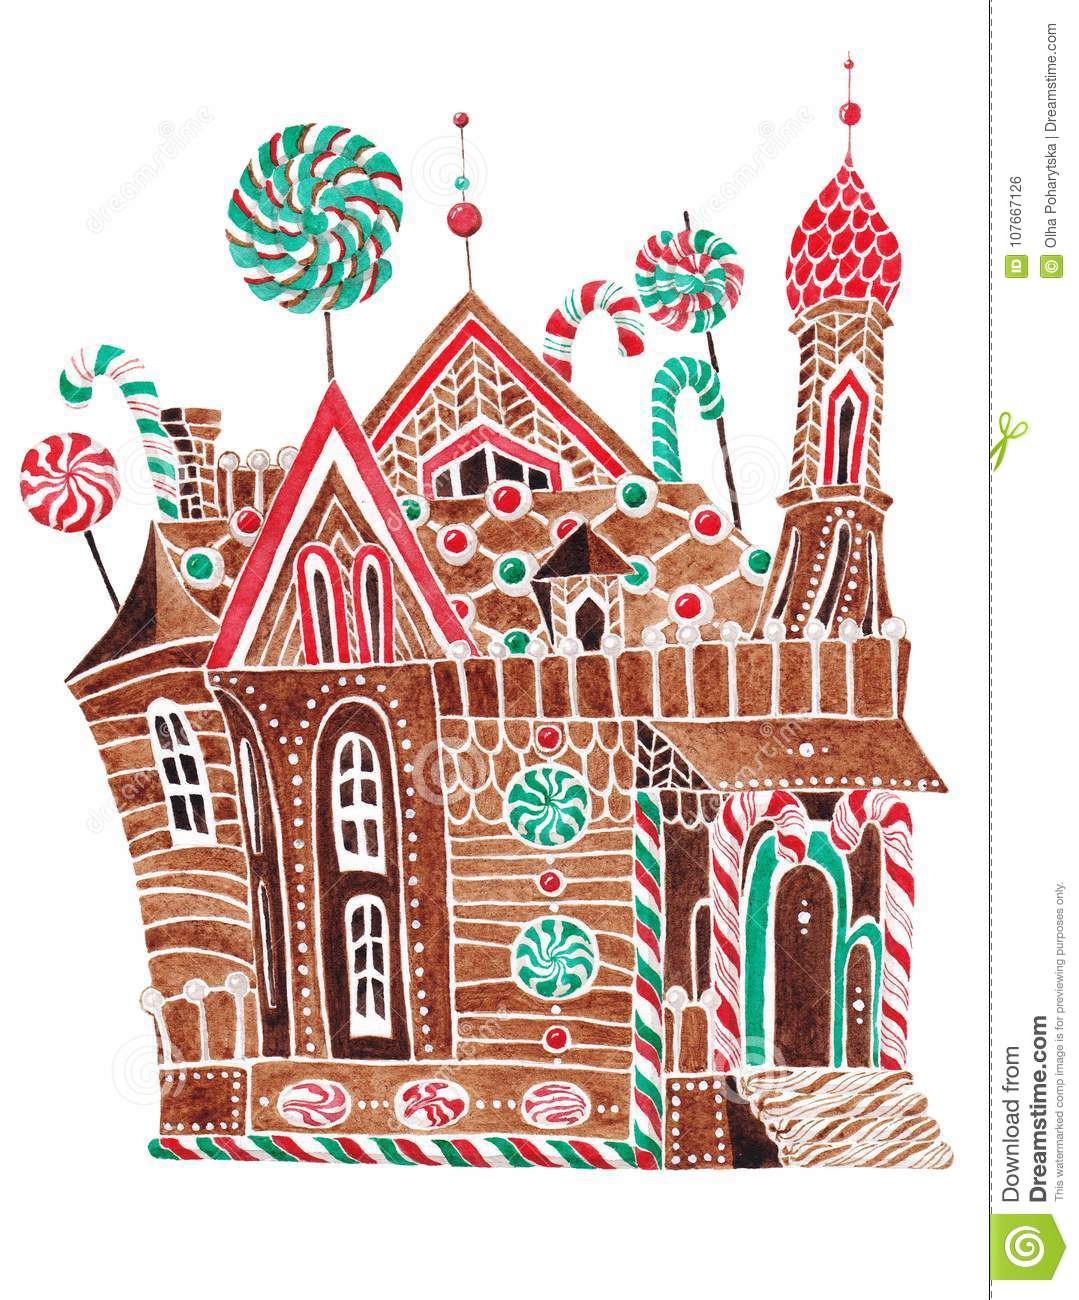 Christmas Gingerbread House Drawing.Stylized Gingerbread House Stock Illustration Illustration